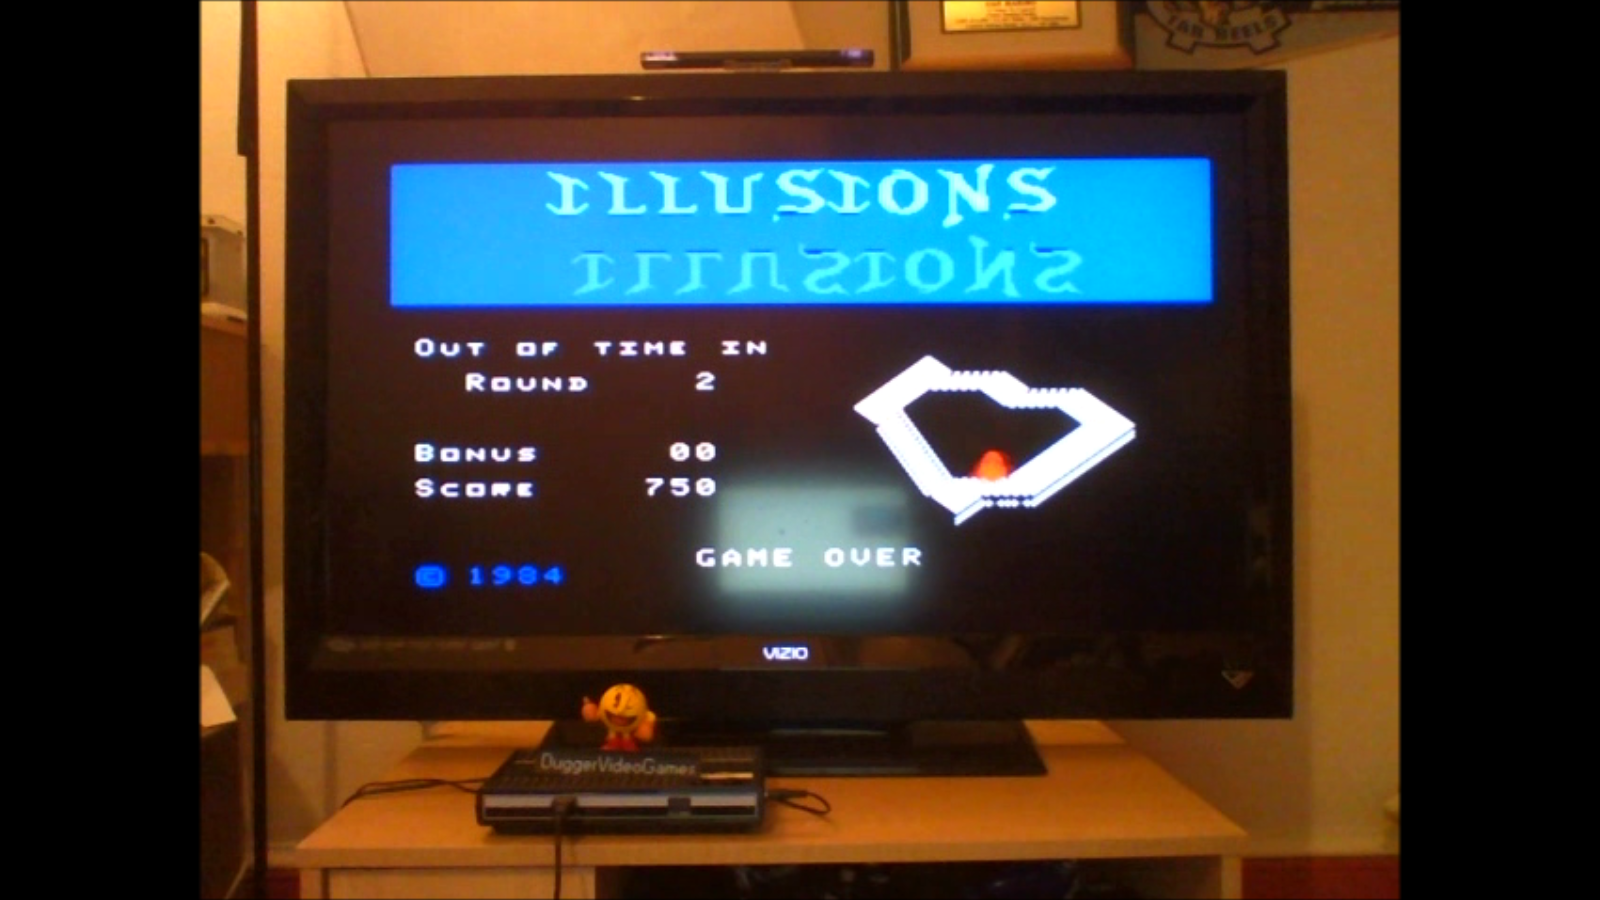 DuggerVideoGames: Illusions [Skill 1] (Colecovision Emulated) 750 points on 2016-07-24 21:20:25